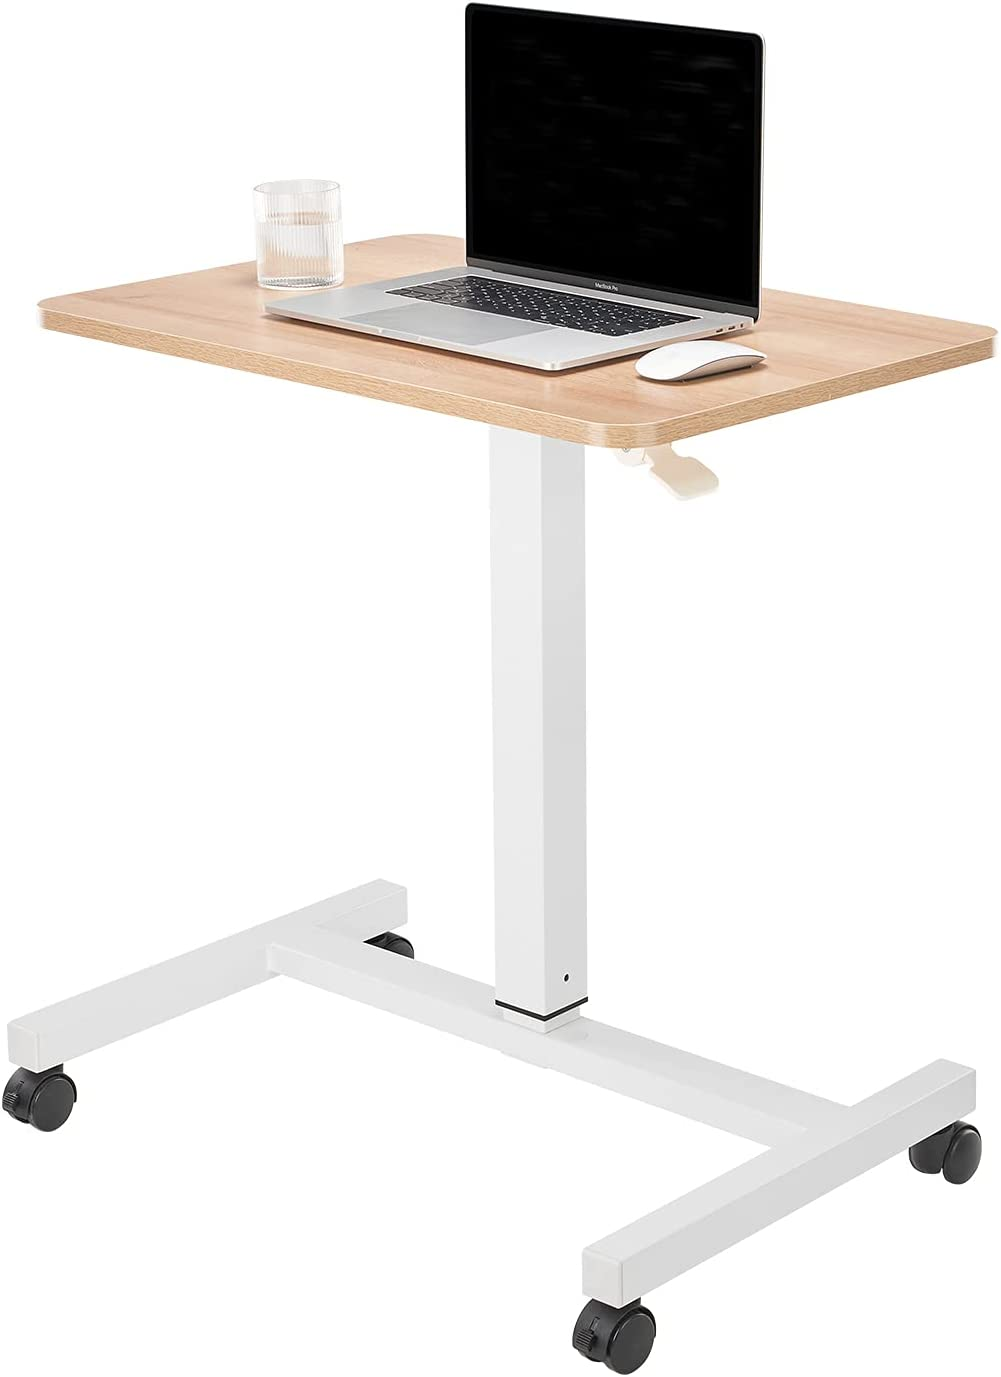 CLATINA Mobile Laptop Desk Pneumatic Sit to Stand Table Height Adjustable Rolling Cart with Lockable Wheels for Home Office Computer Workstation, 28 x 19 Inch Beige - Fidel